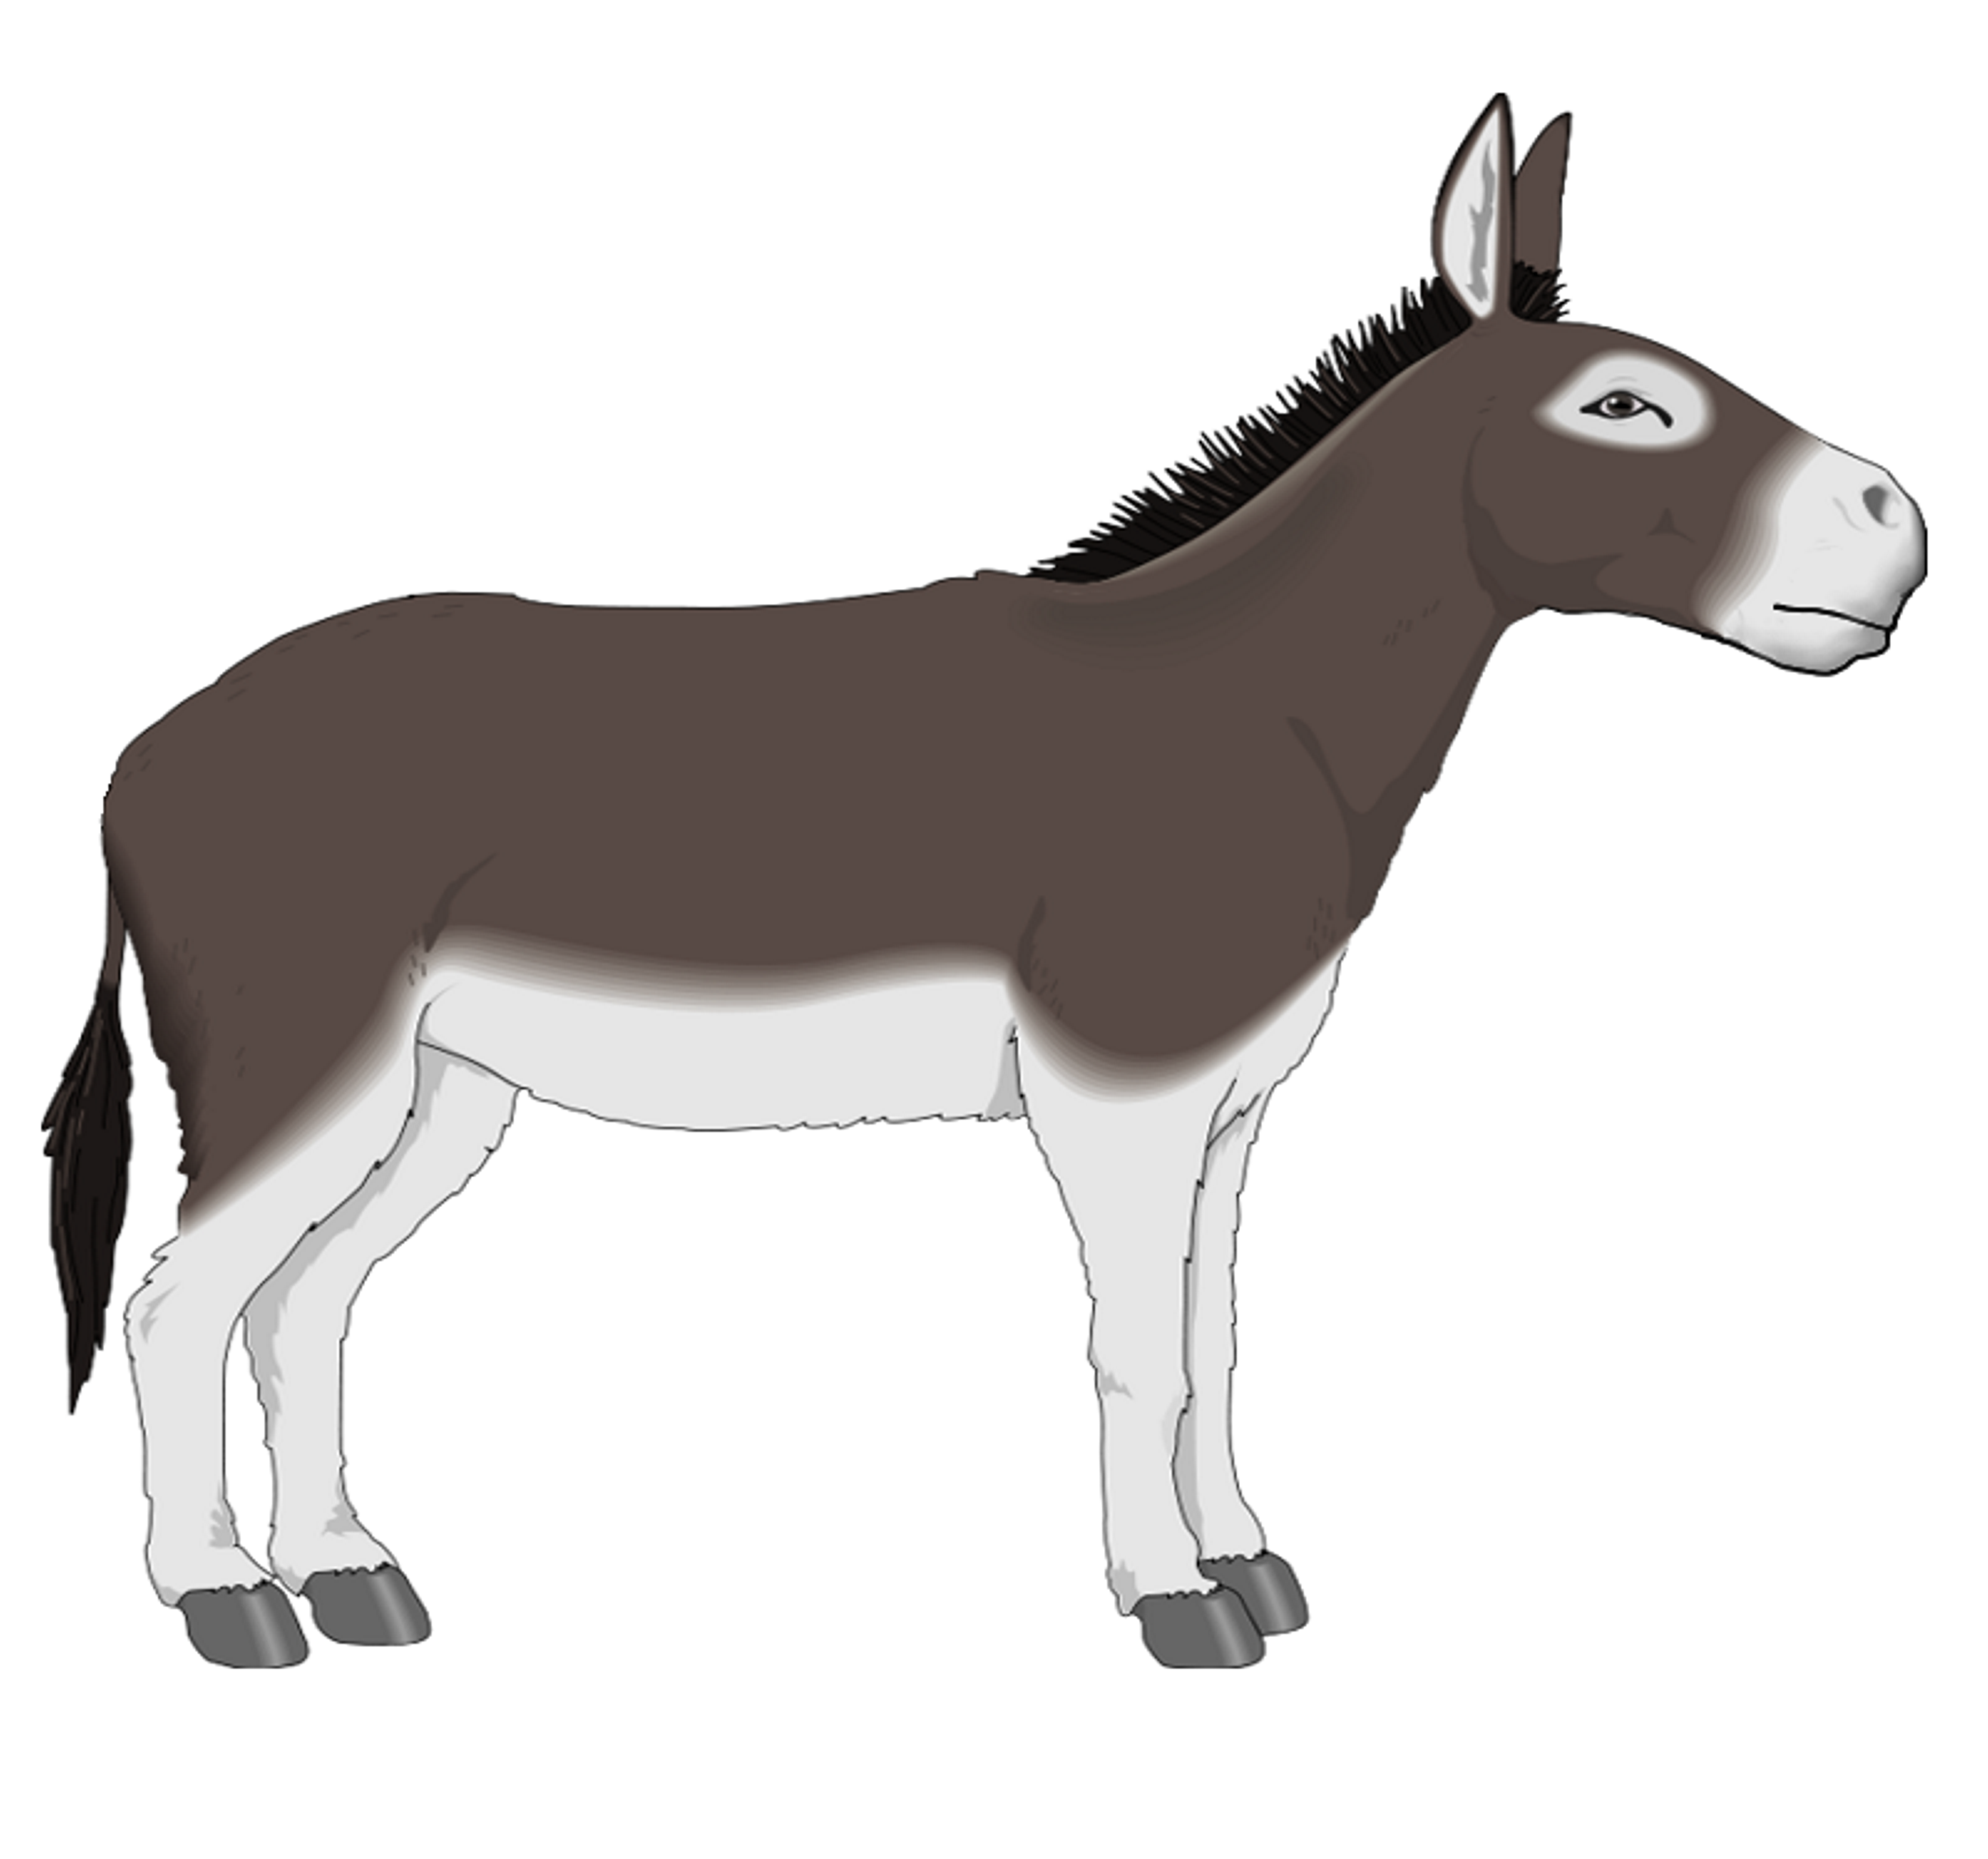 Free Donkey Clipart, Download Free Clip Art, Free Clip Art on.